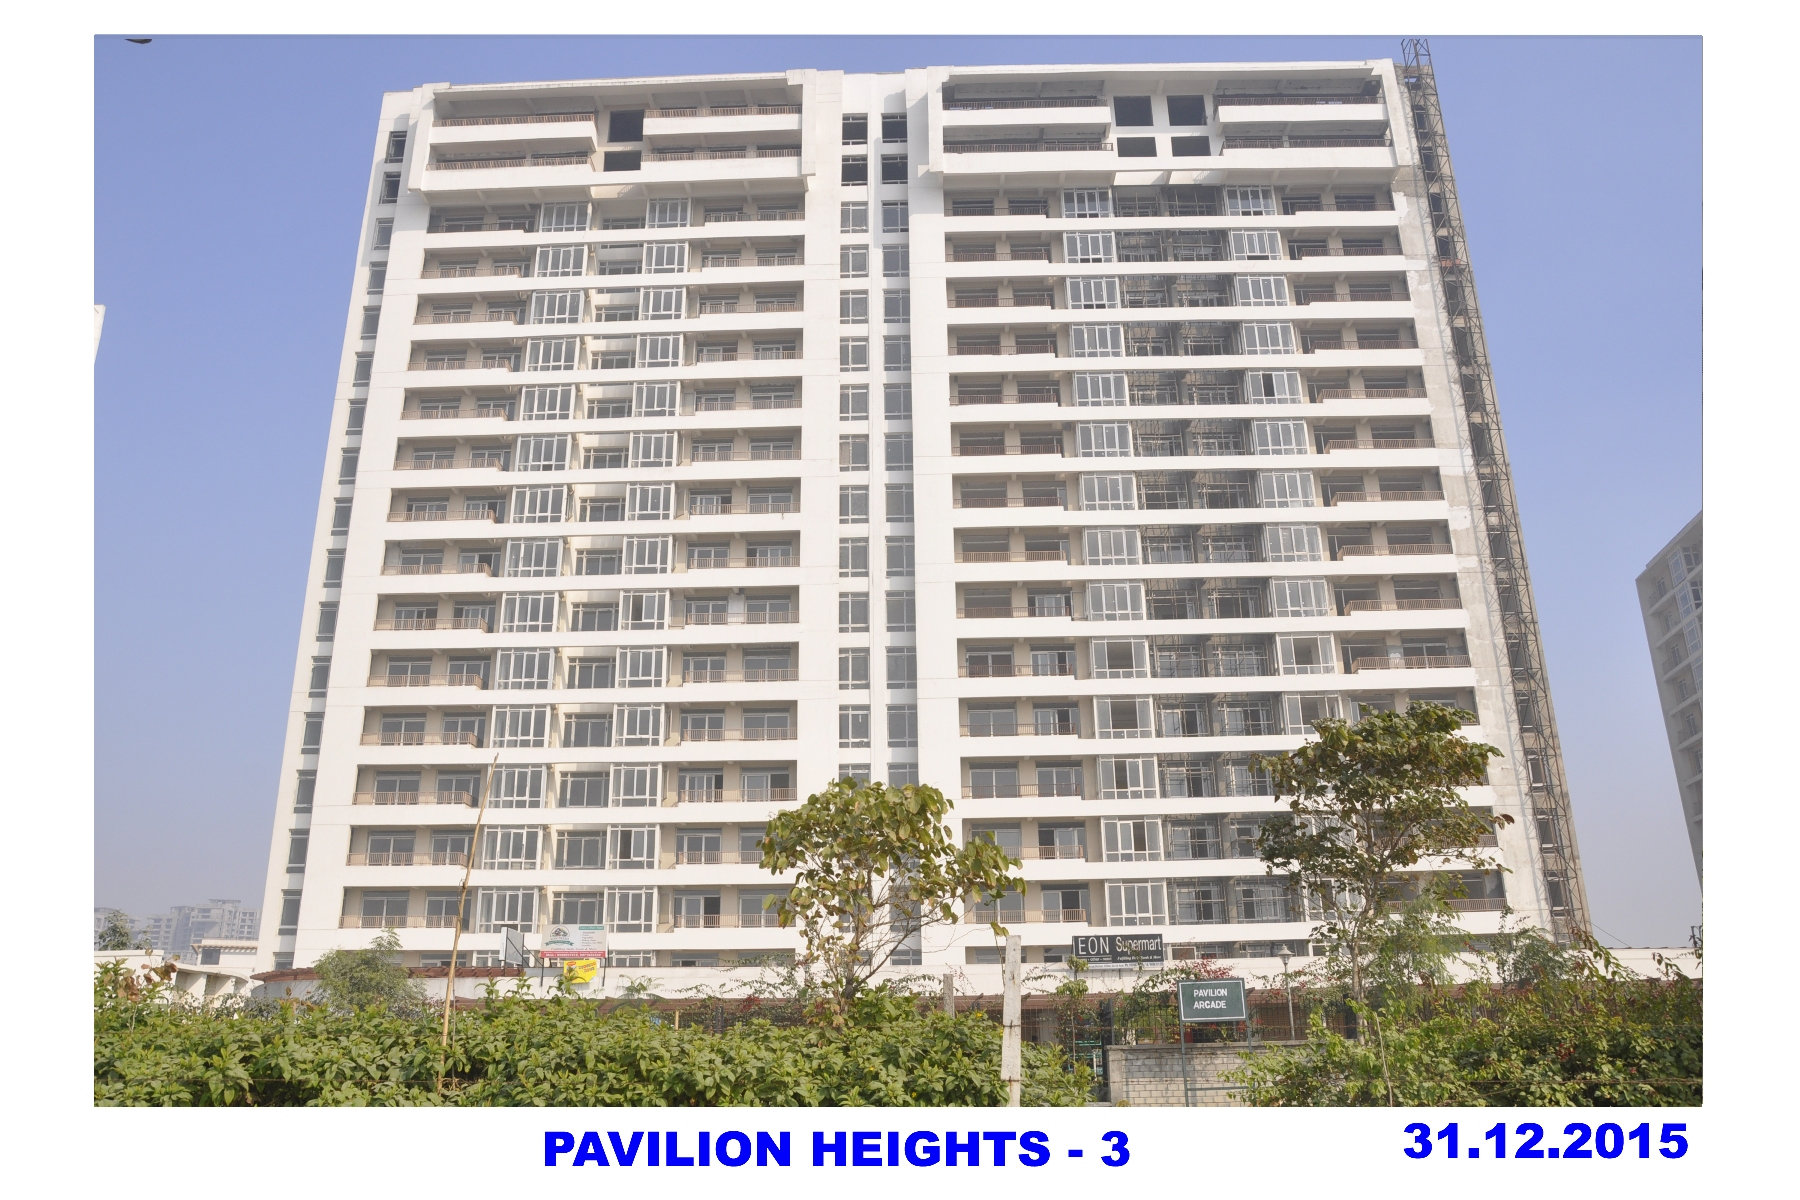 Pavilion Height Tower - 3